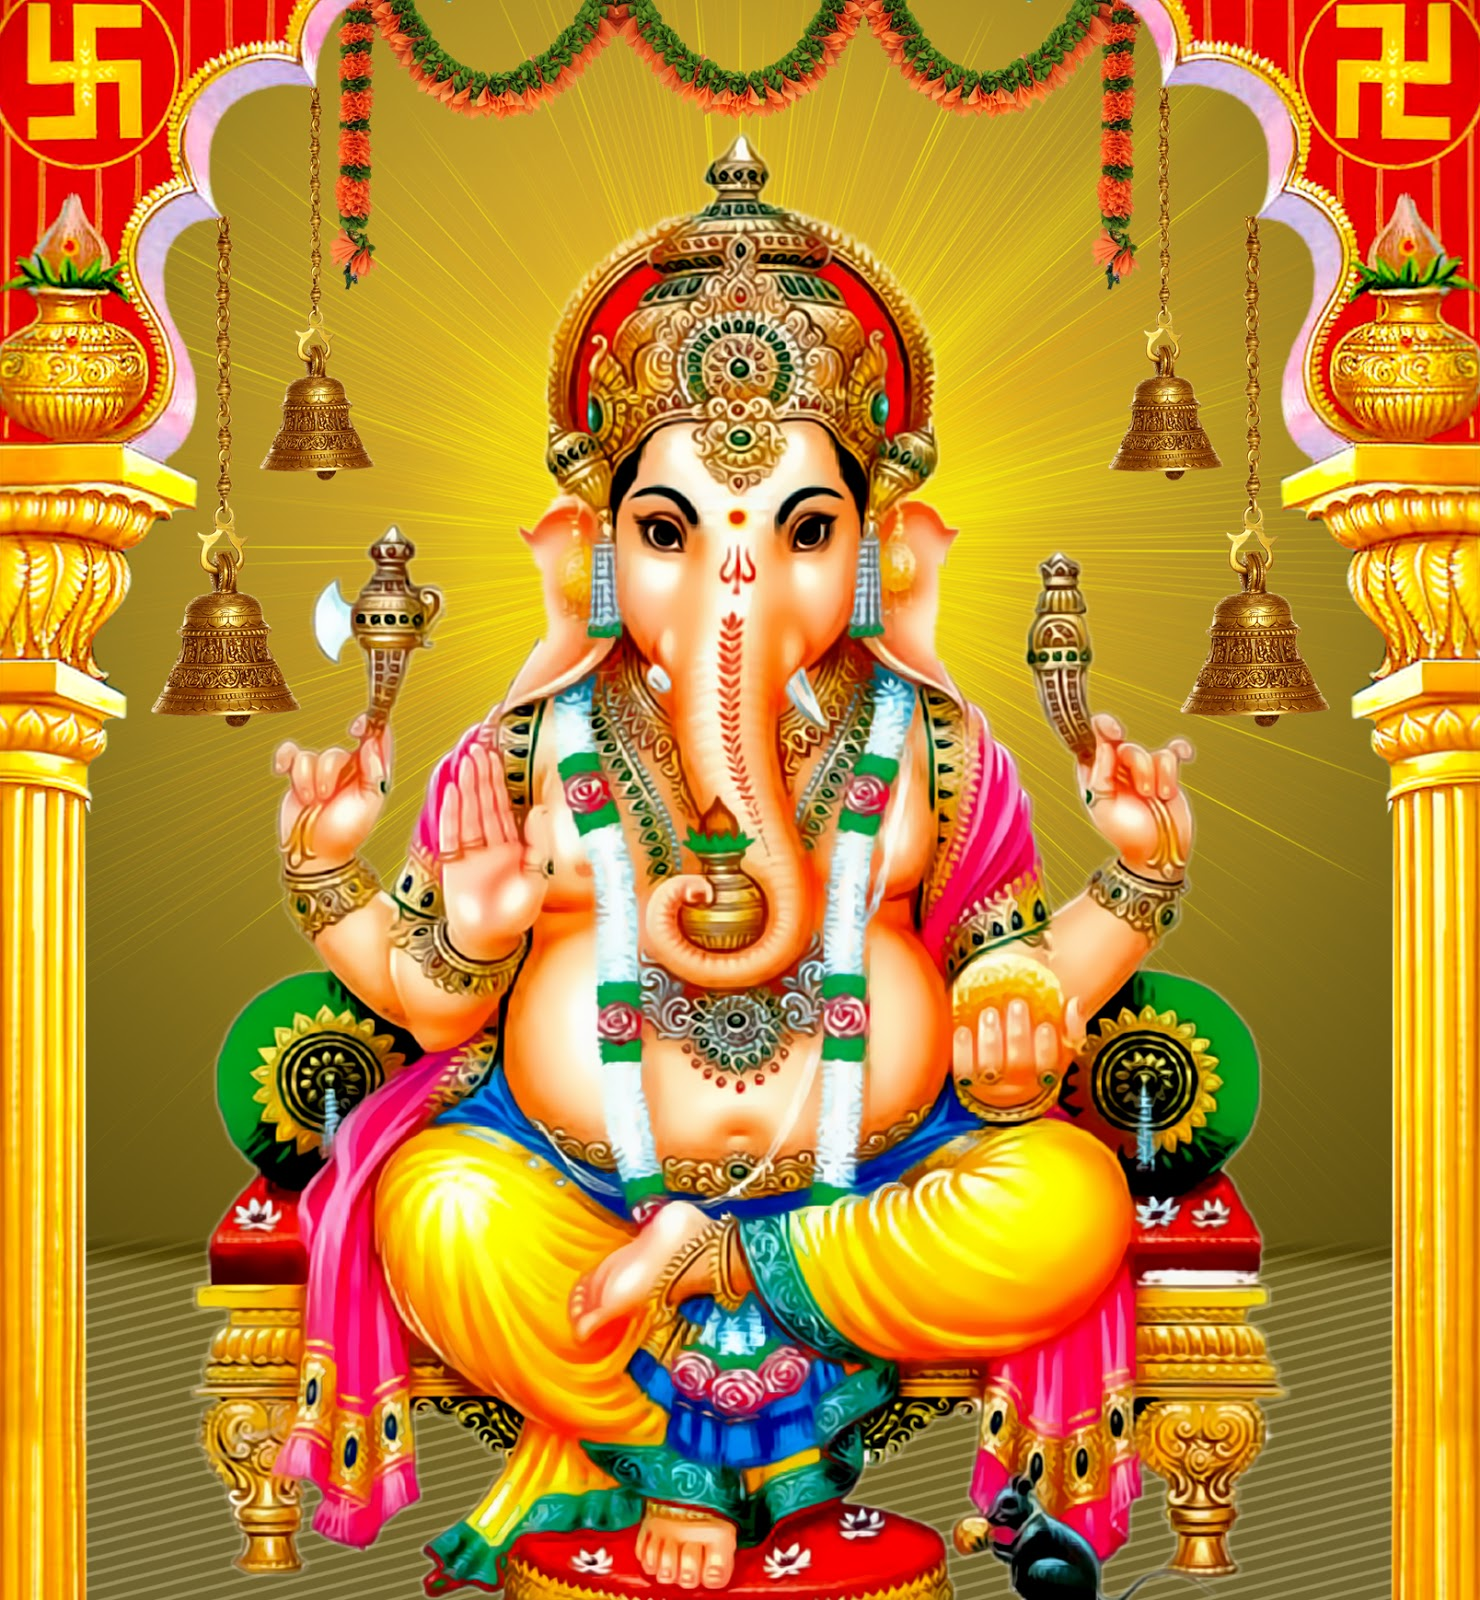 Hd wallpaper ganpati - Lord Vinayaka Hd Images Free Downloads Lord Ganesha New Hd Pictures Free For Vinayaka Chavithi